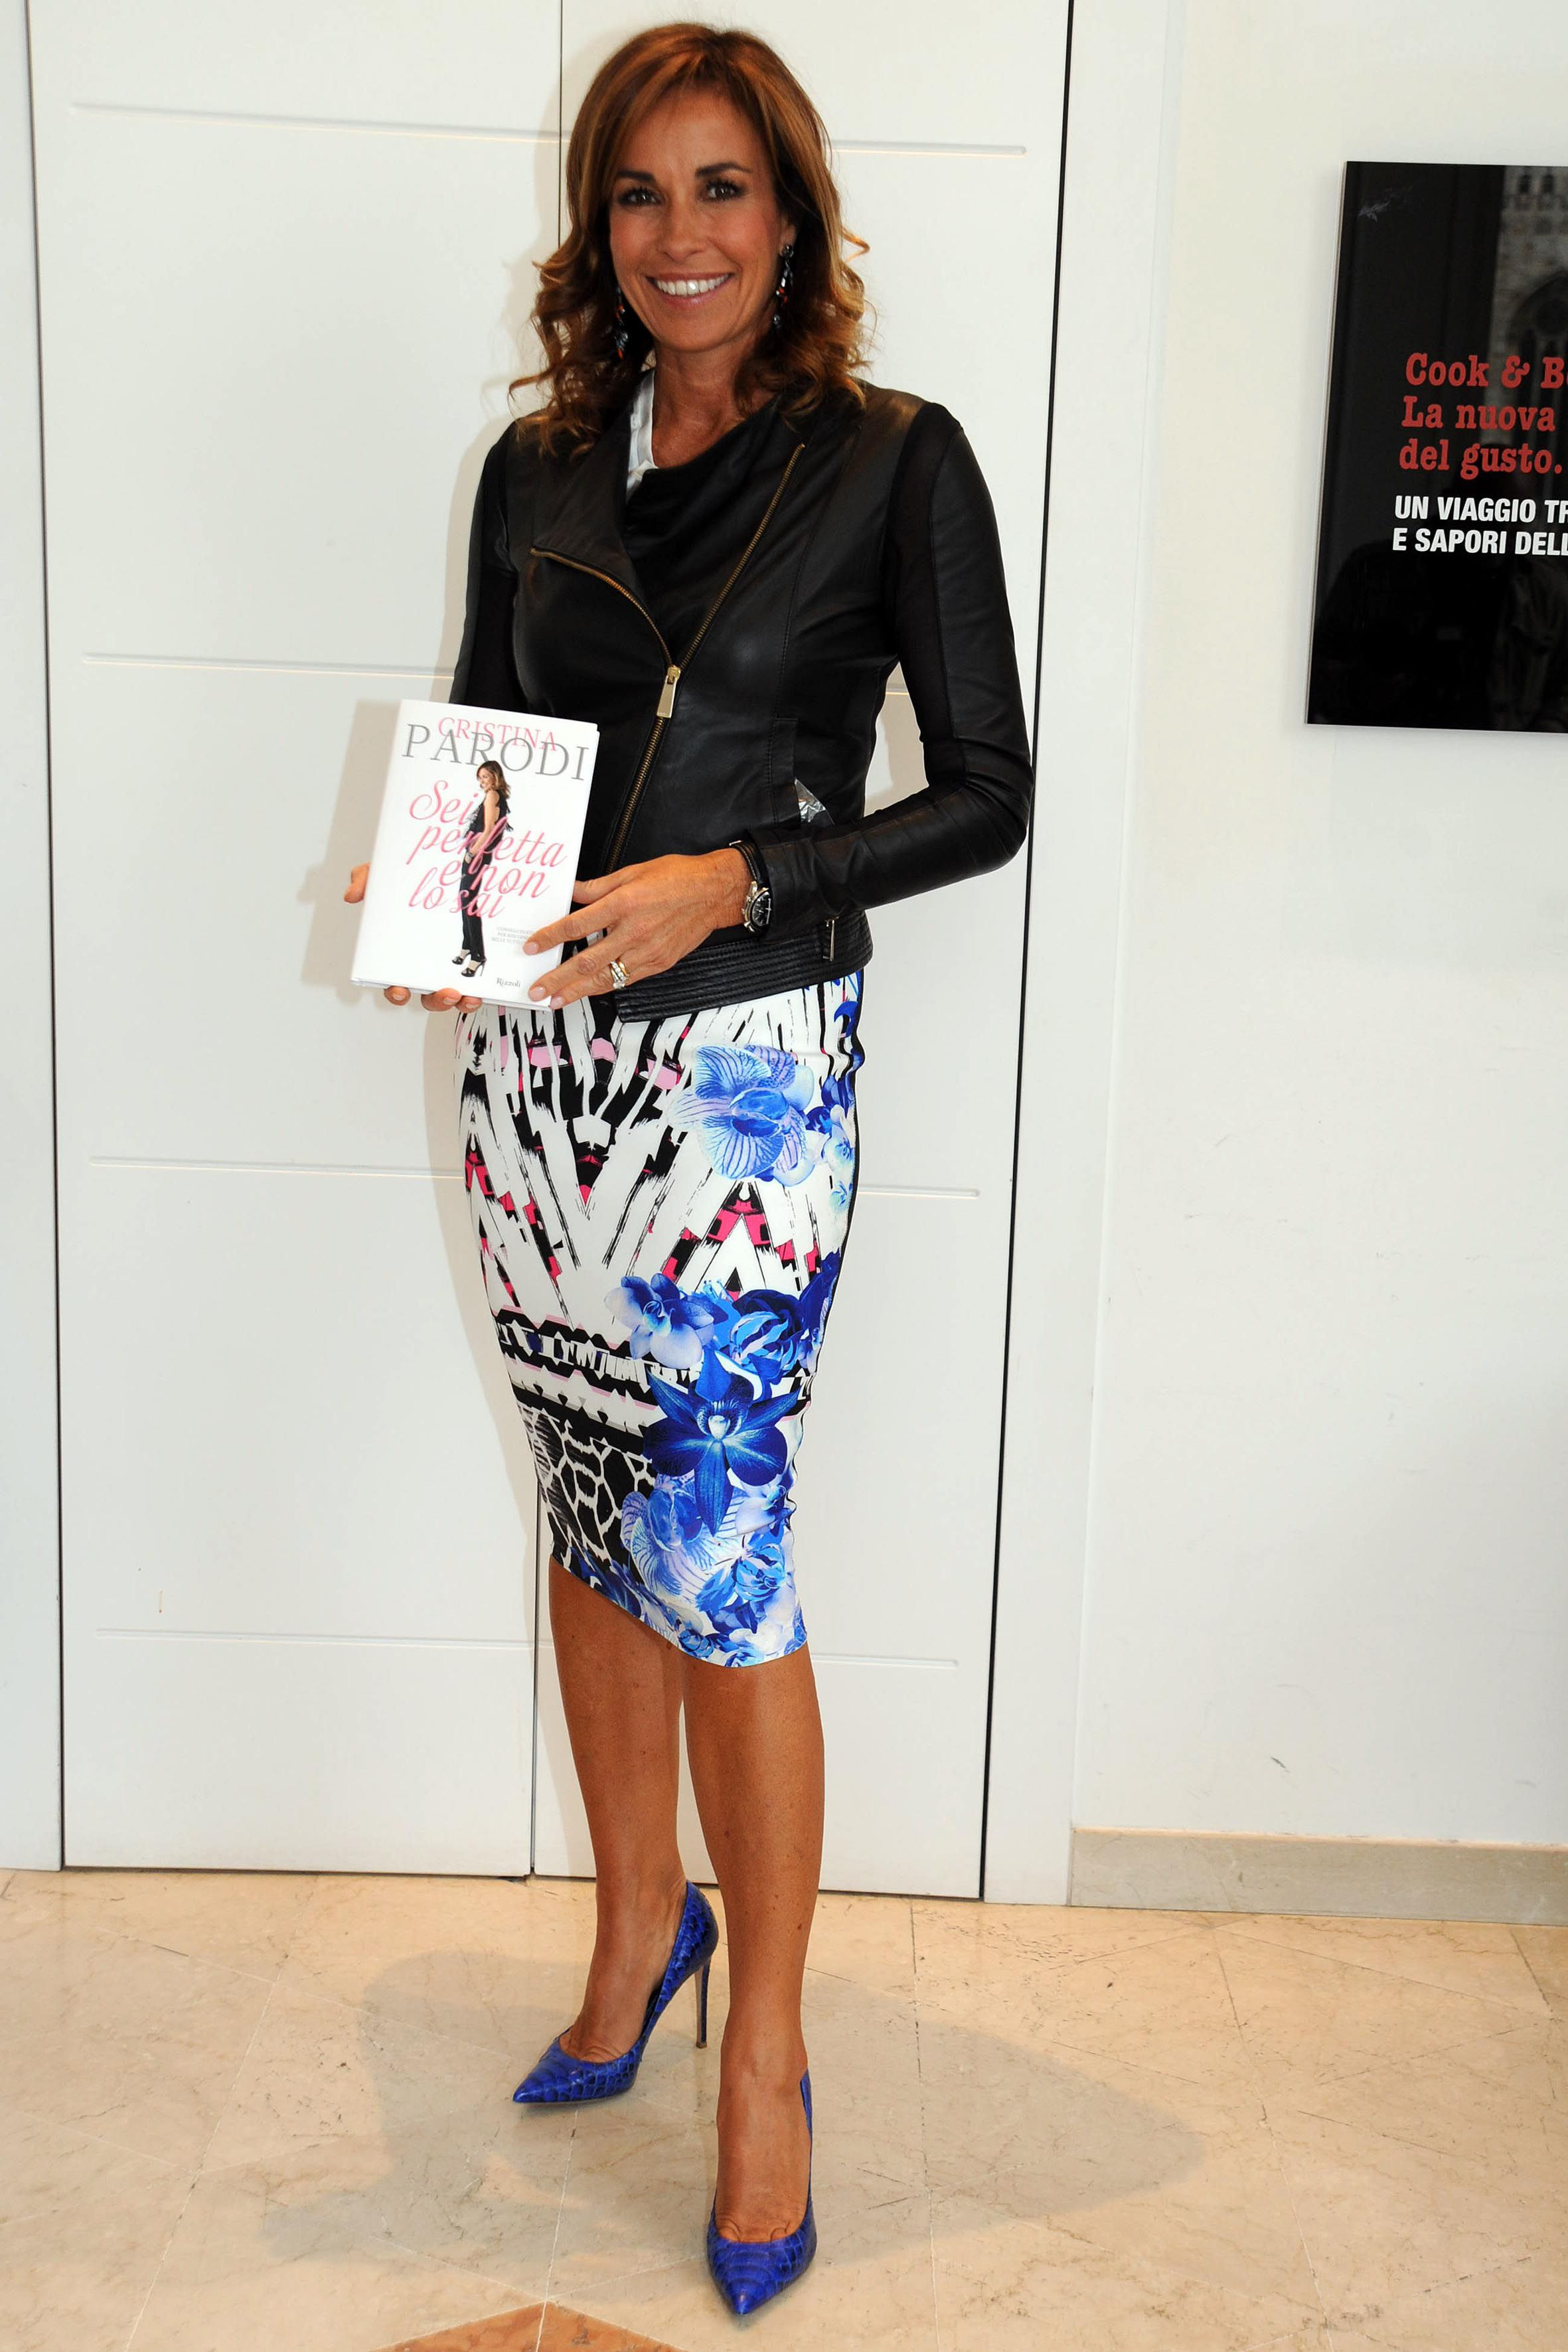 Cristina Parodi wearing #lesilla. The pump is available on e-boutique at  this